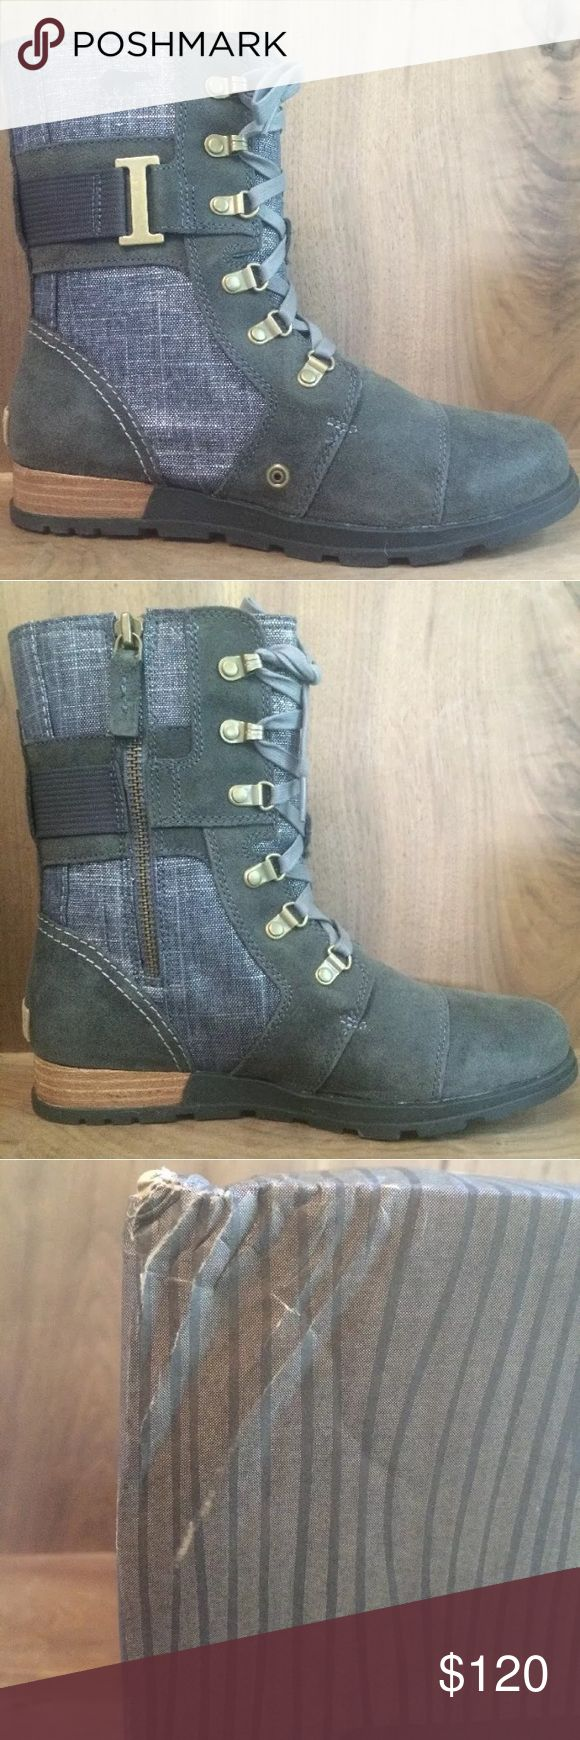 Sorry Major Carly Lace Up Boots Graphite 8.5 Sorel New in Box Major Carly Graphite/Shark Women's Military Boots size 8.5. Please look at reviews for the sizing on these boots to make sure you get the correct size. They have lace up details and an inside zip to make them easy to get on. Super cute boots! Light wear to box. Shoes unworn. ♦️No trades♦️ Sorel Shoes Lace Up Boots